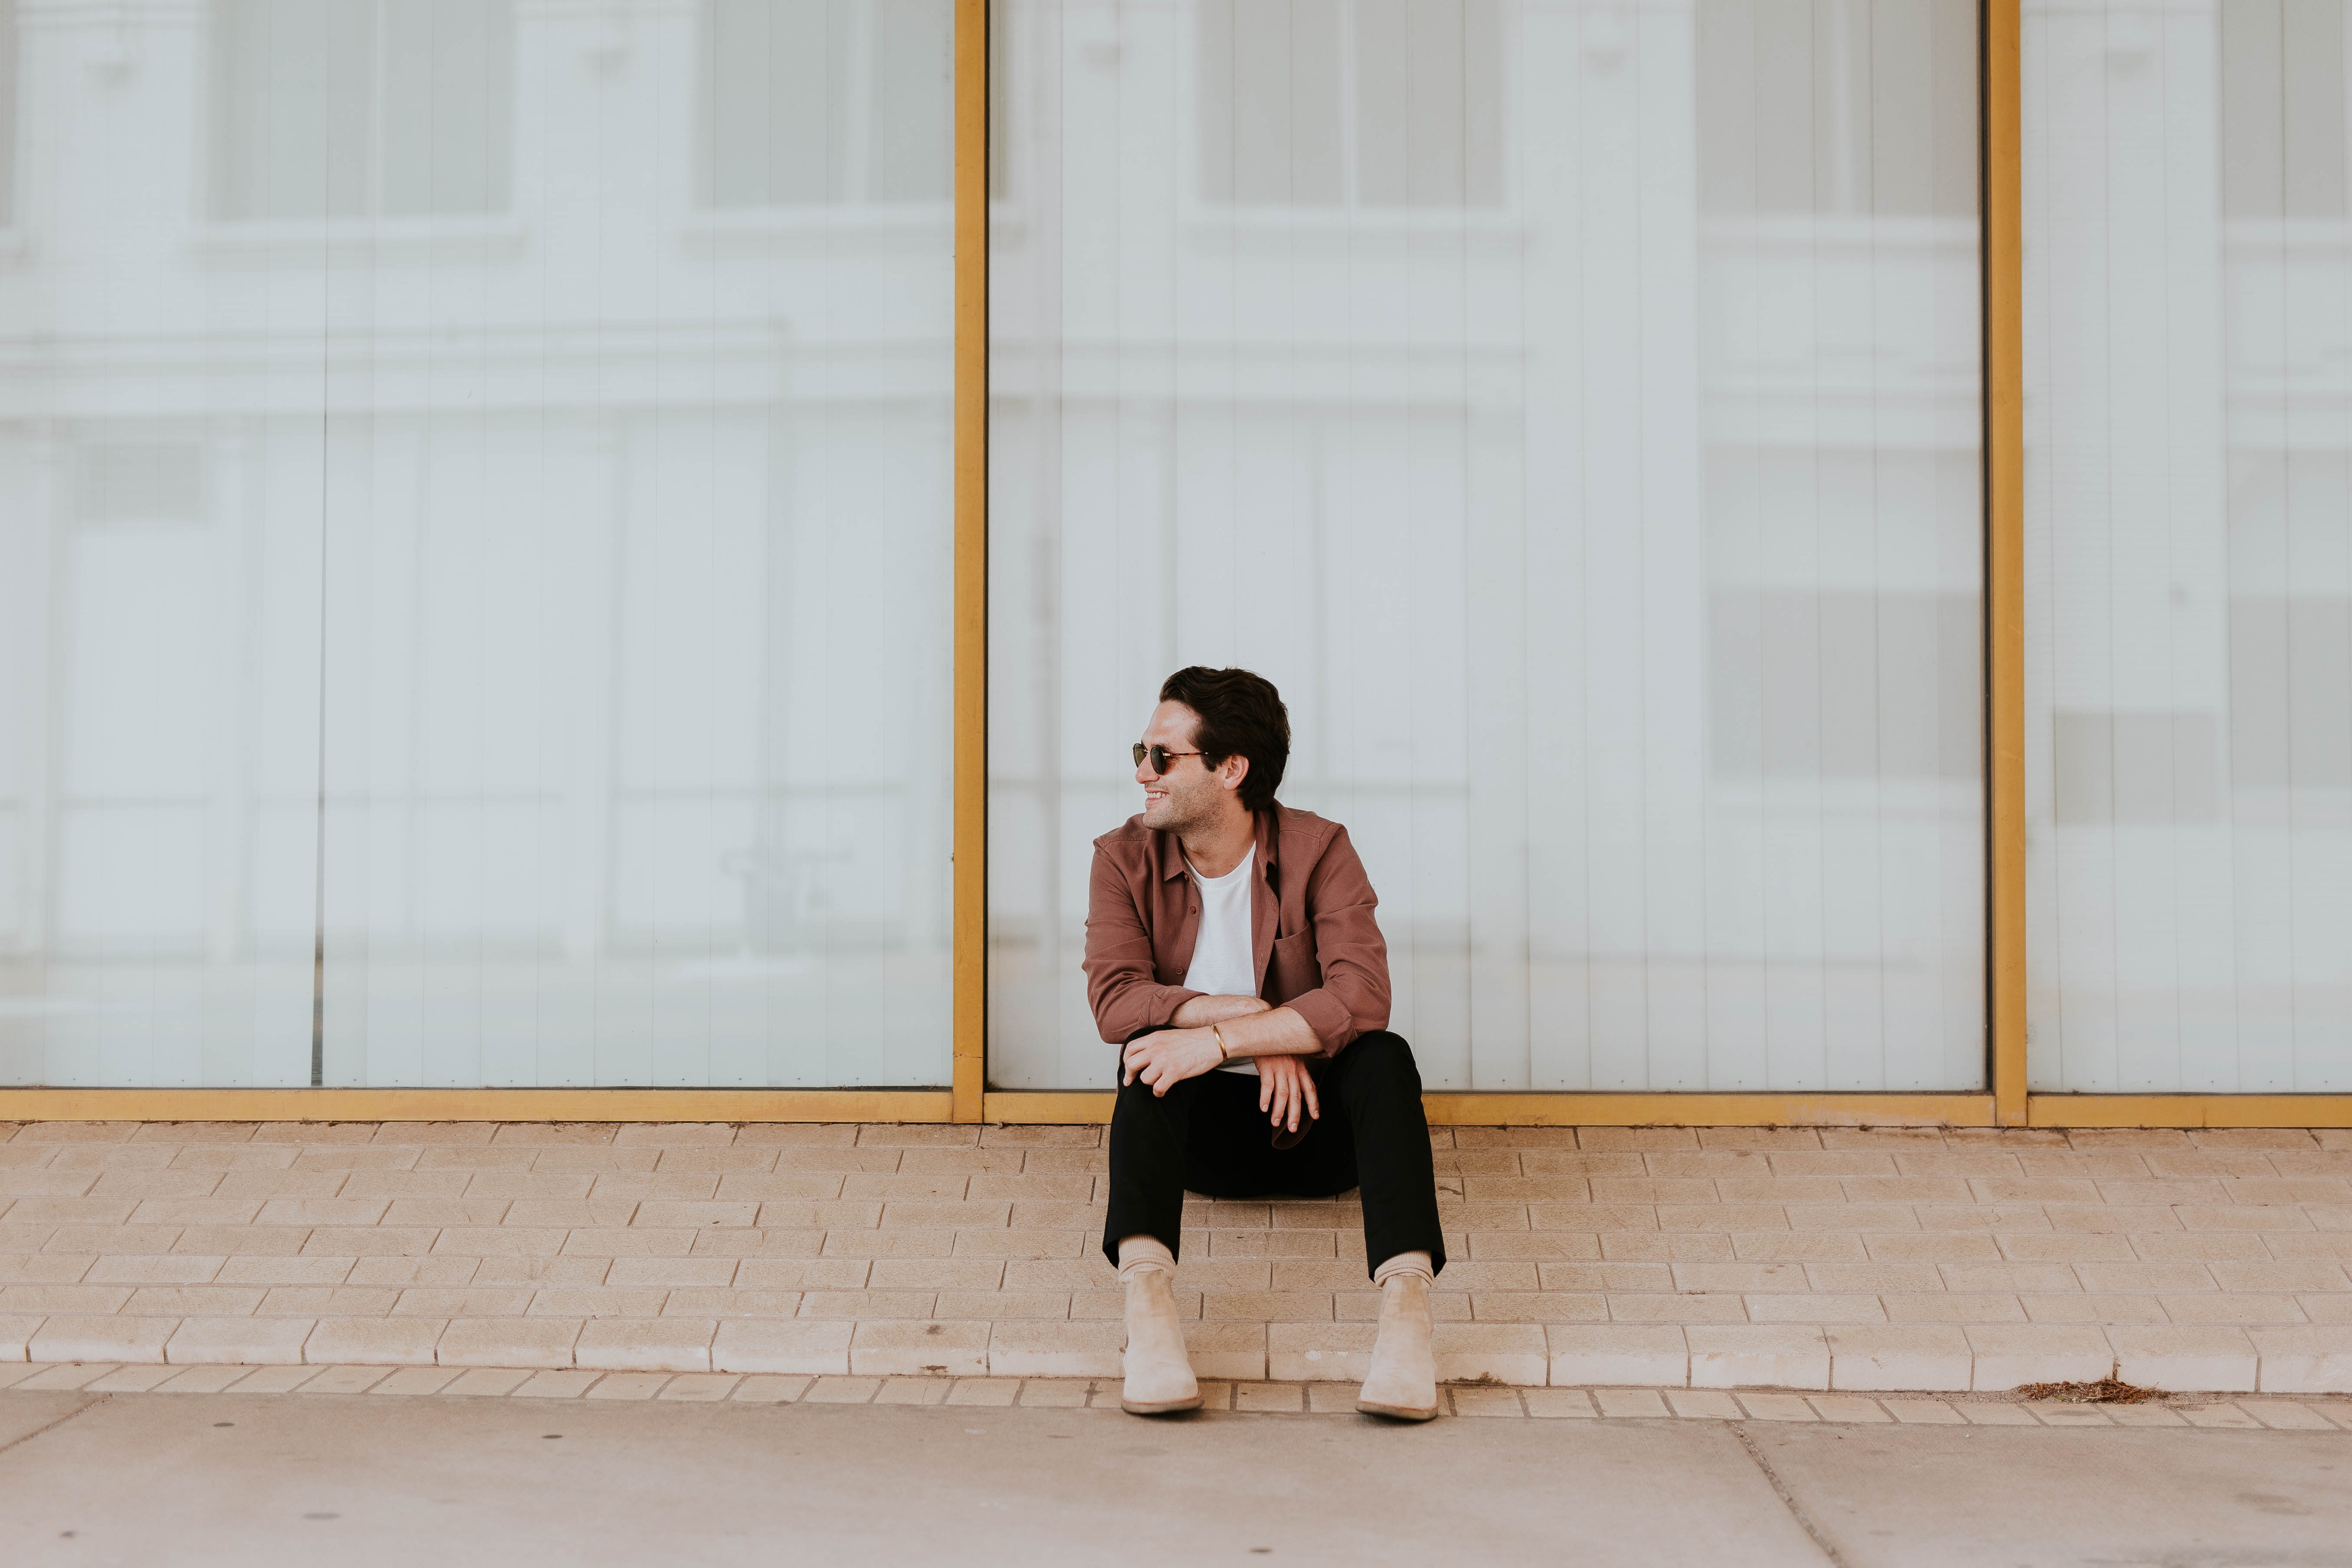 photo of man sitting on brown bricks against glass wall